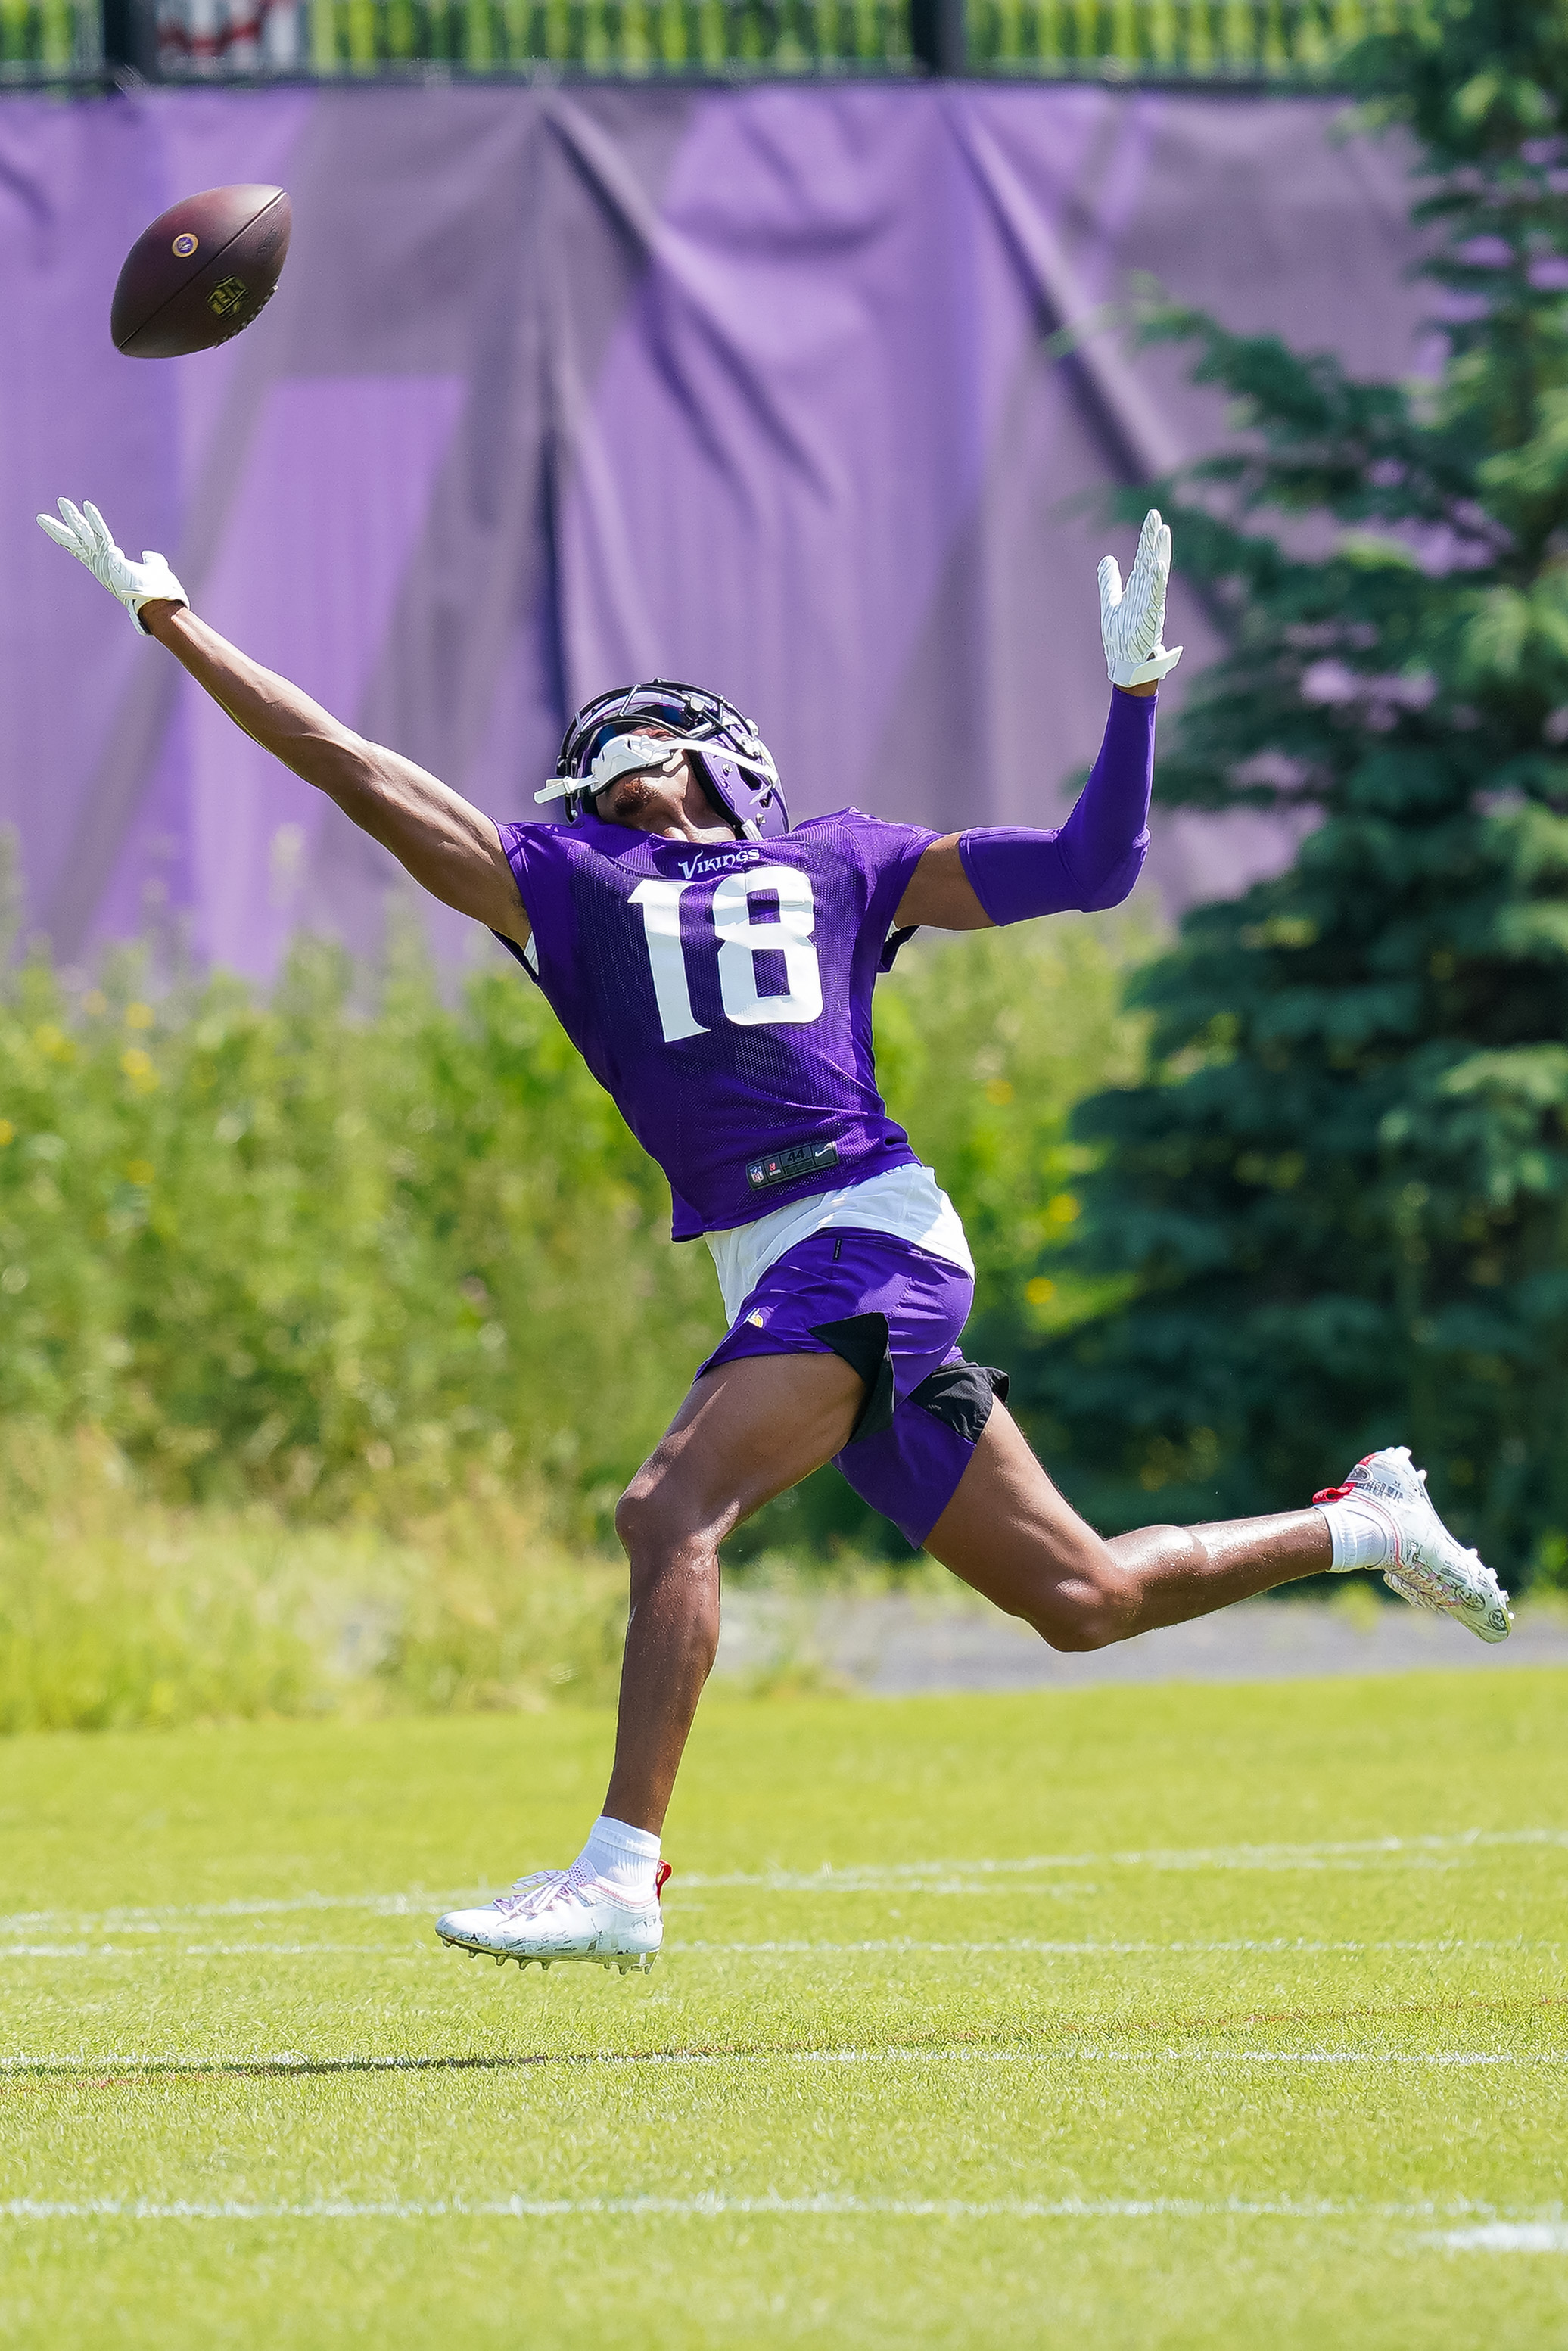 Minnesota Vikings wide receiver Justin Jefferson (18) attempts to catch a pass in drills at OTA at TCO Performance Center.